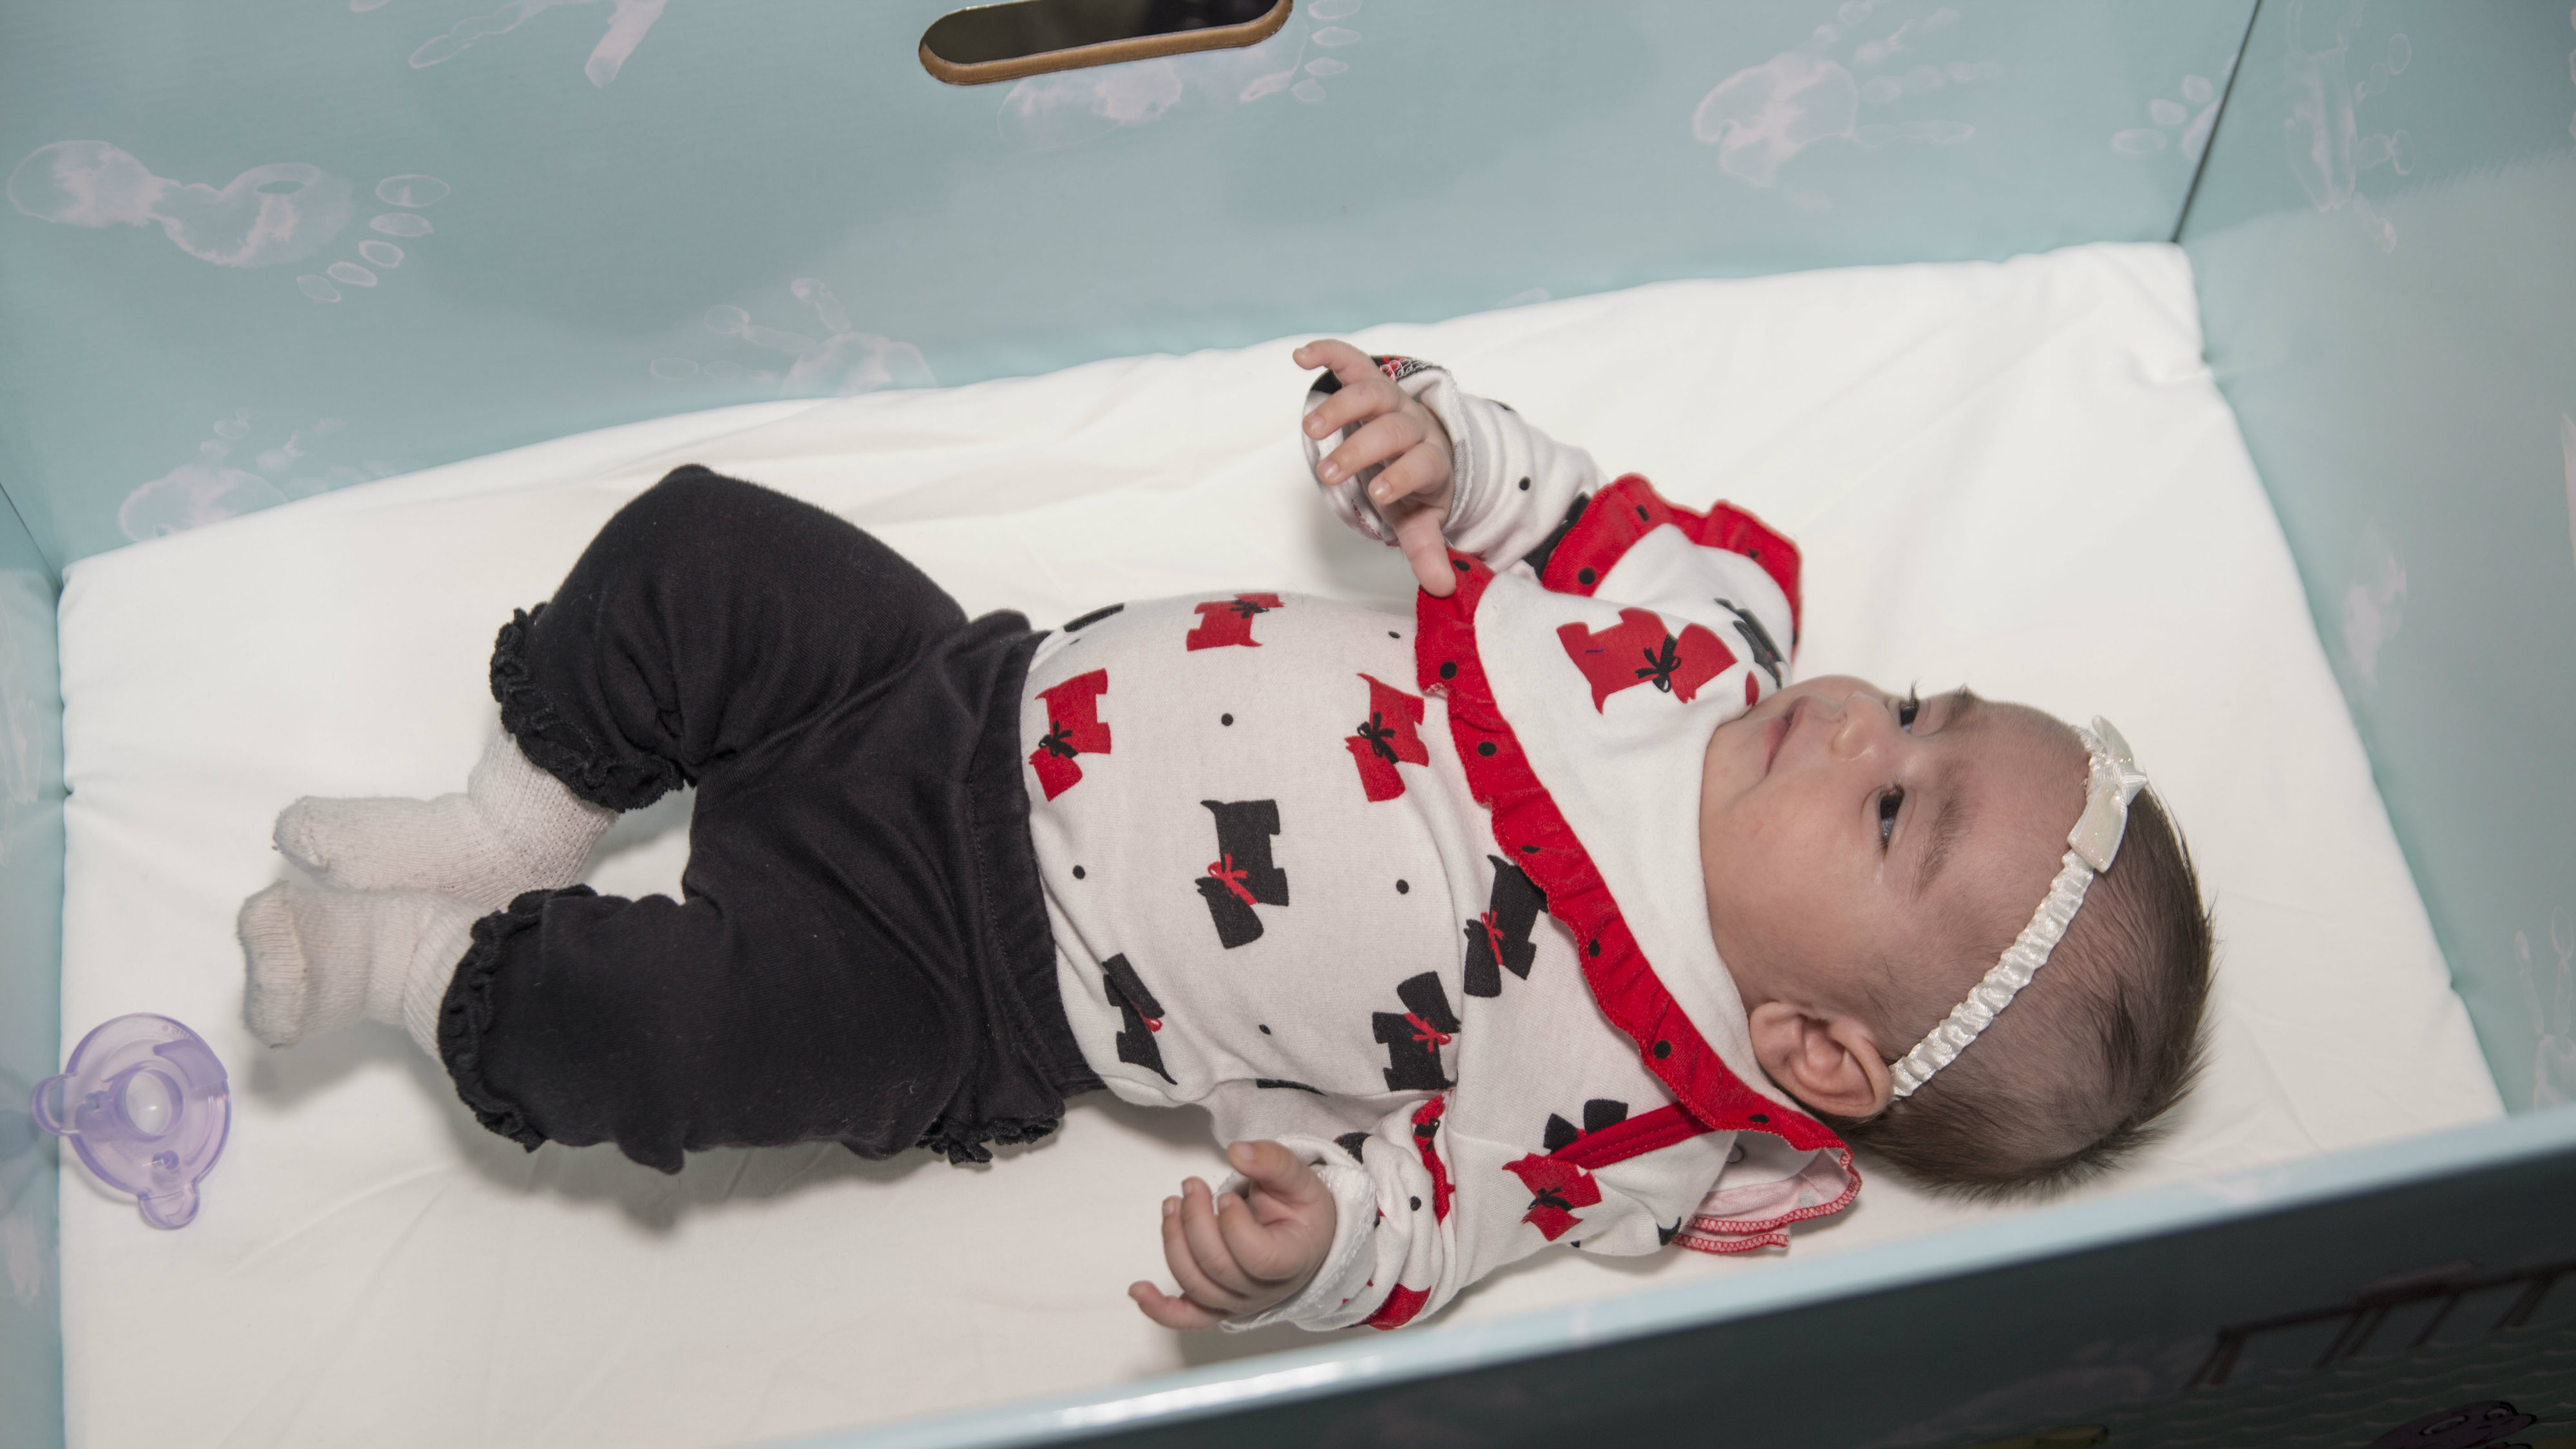 Baby boxes, originated in Finland, will now be distributed in New Jersey.